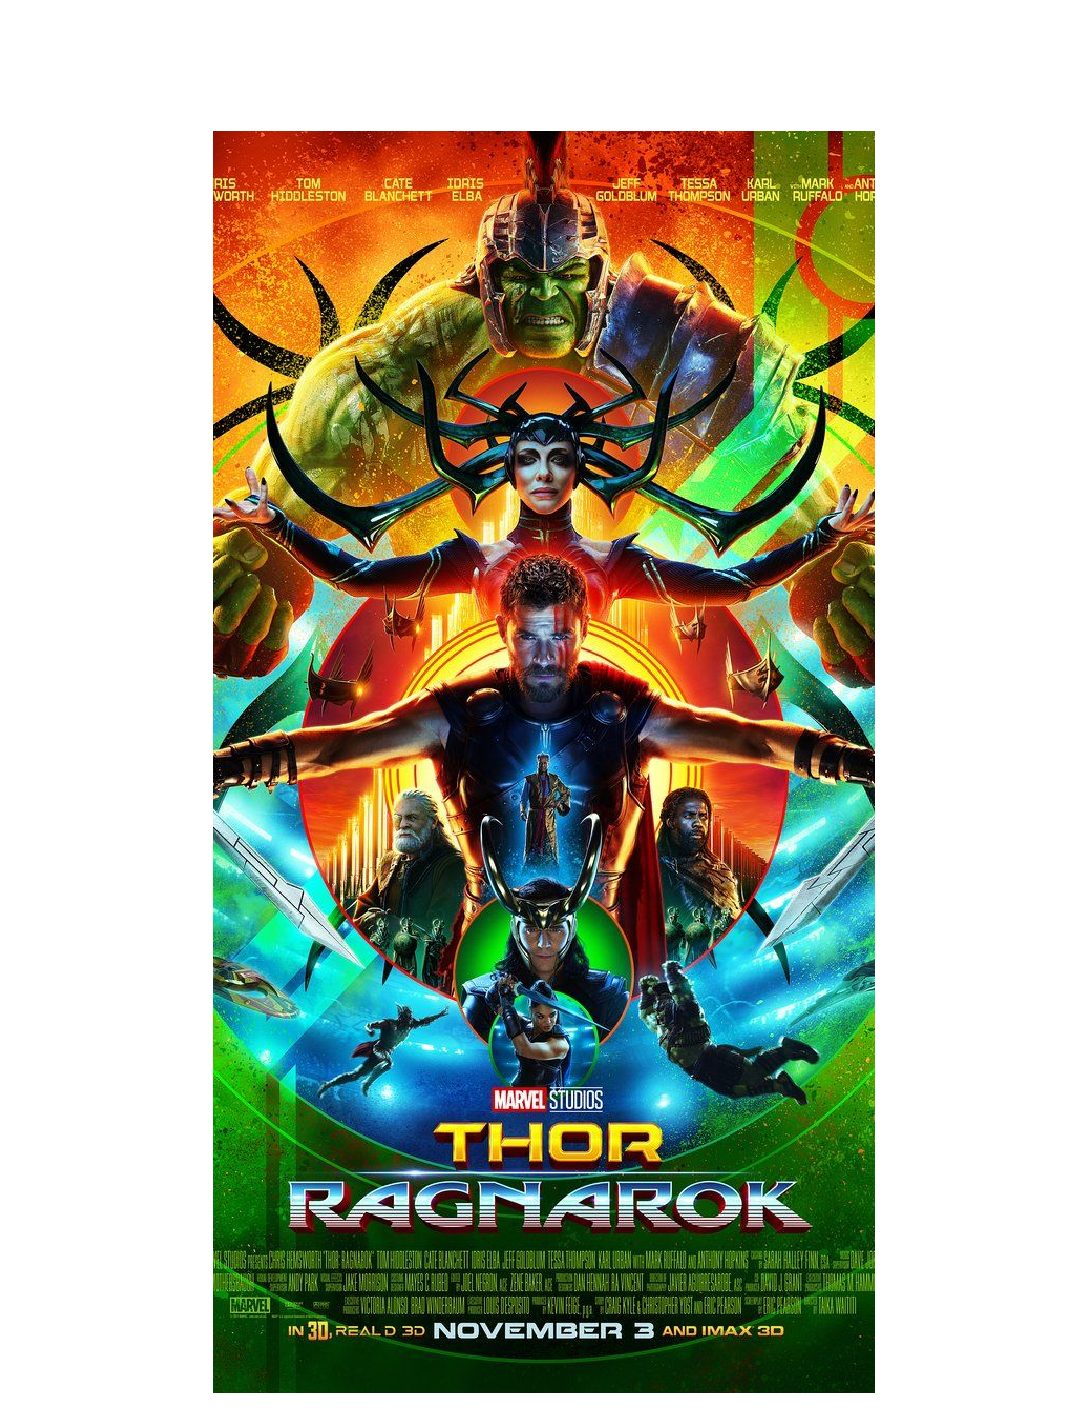 Thor: Ragnarok – Worth Your Time?